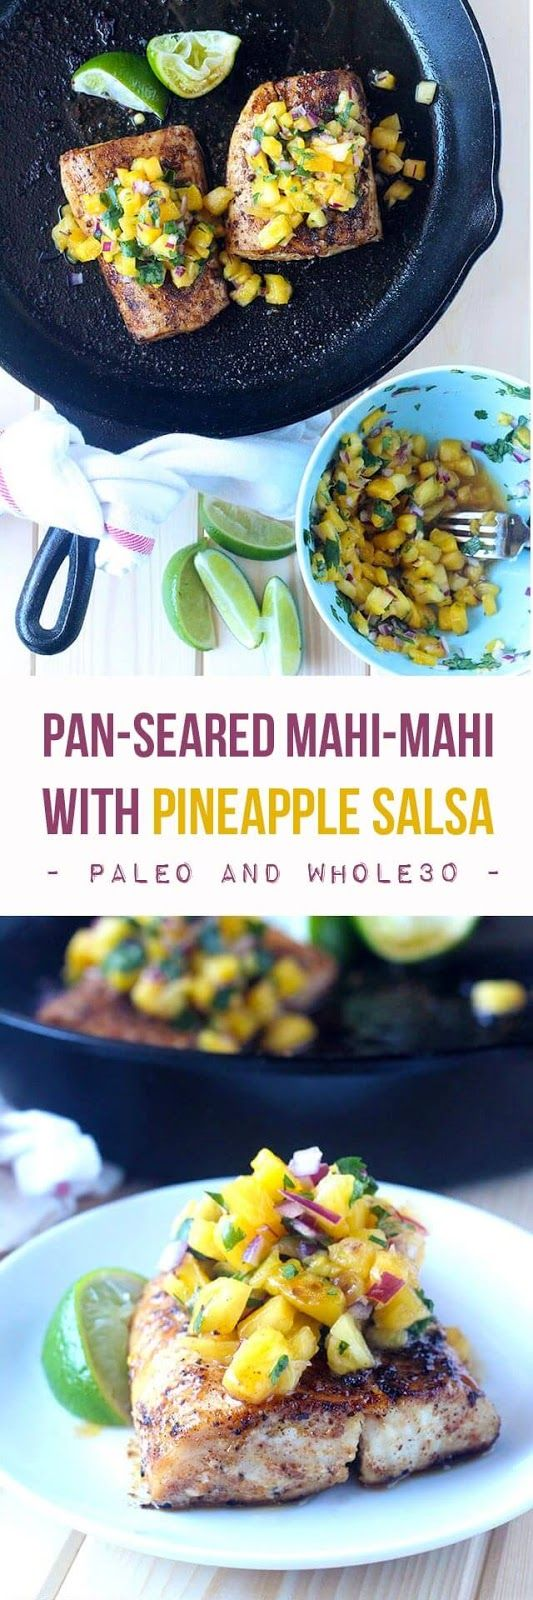 Healthy Fish Recipe: Pan-Seared Mahi-Mahi with Pineapple Salsa (Quick & Easy) | Real Food | Paleo | Whole30 | #easydinner #easydinnerrecipes #seafood #healthyfood #whole30